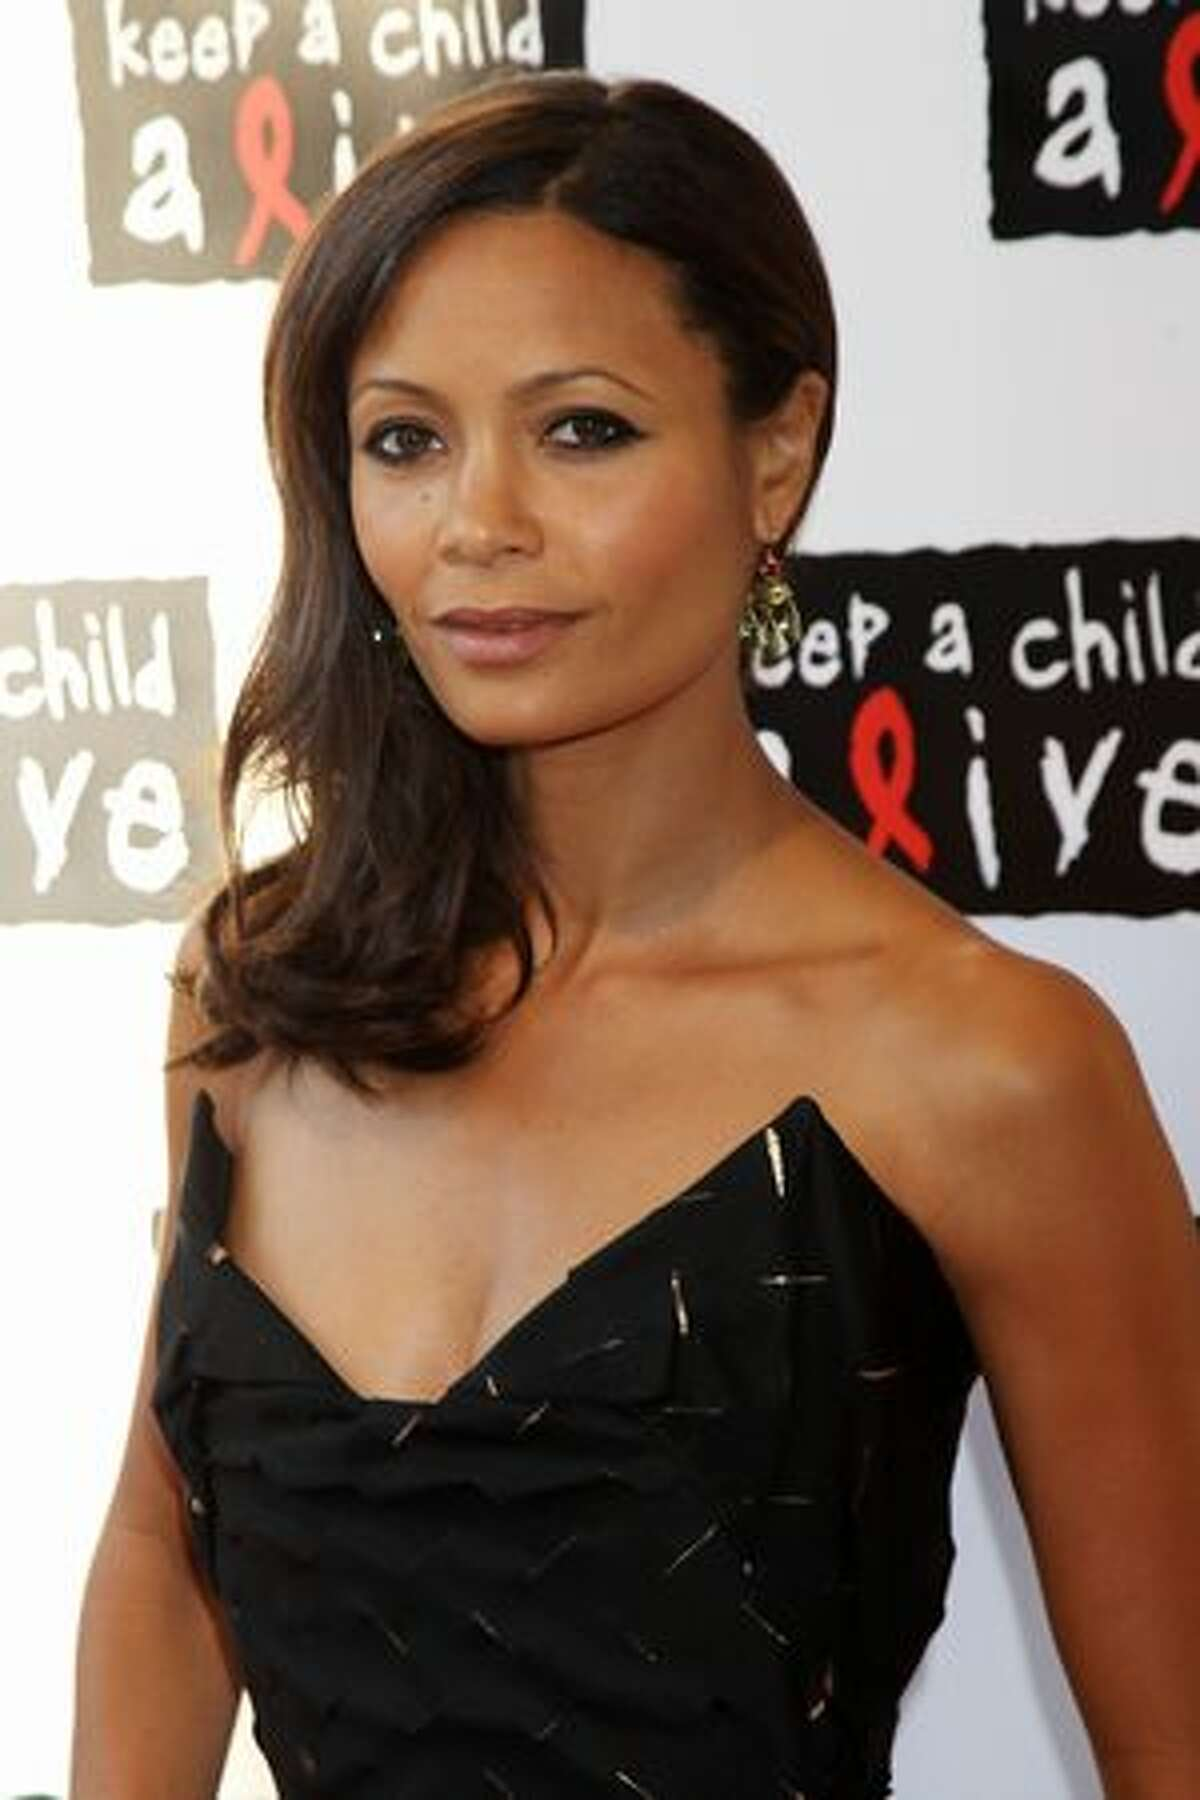 Thandie Newton arrives at the Keep A Child Alive Black Ball held at St John's, Smith Square on May 27 in London, England.